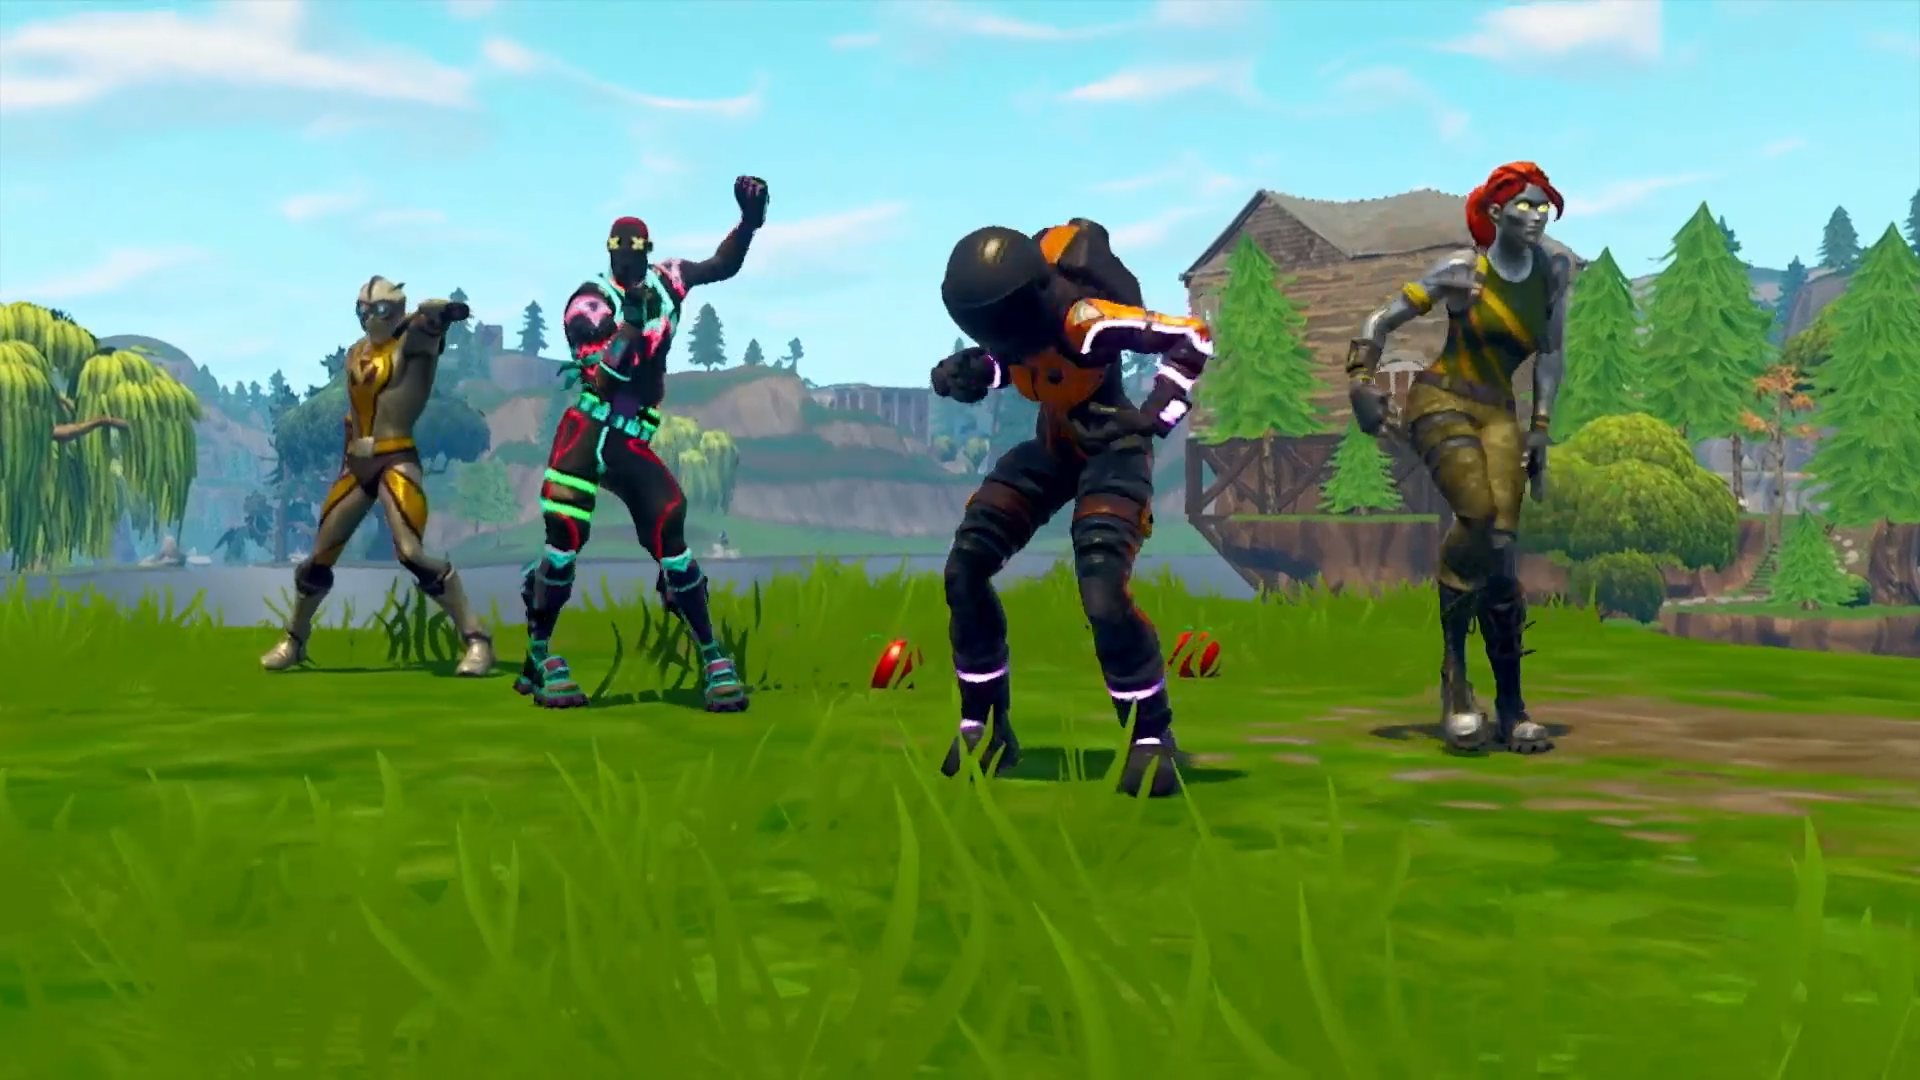 PS4 Fortnite Accounts Are Blocked On The Nintendo Switch